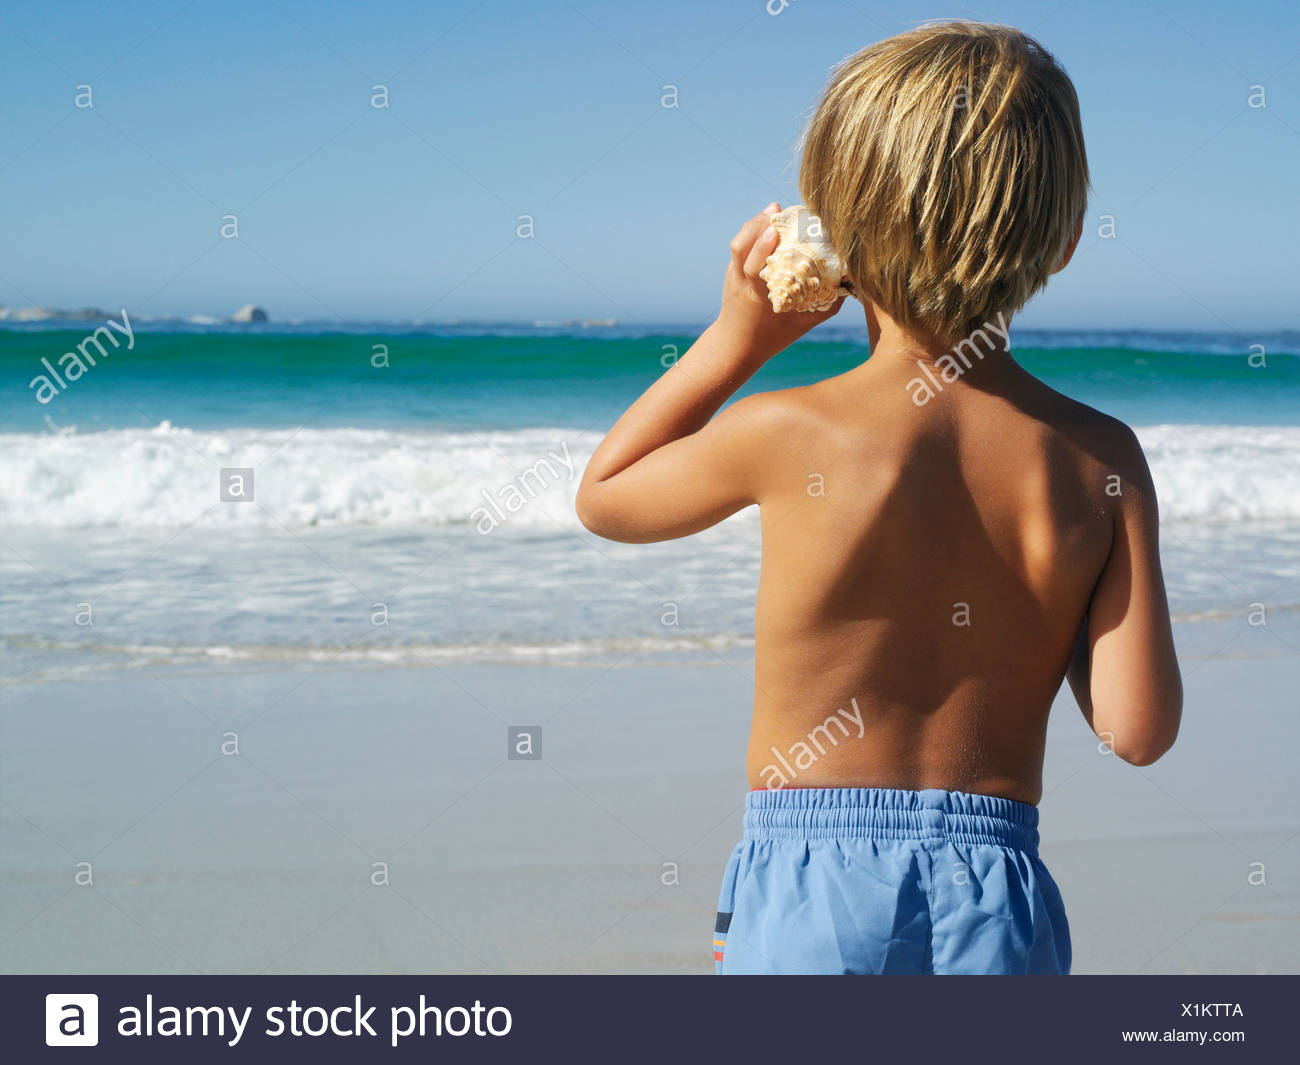 Blonde boy 5 7 standing on beach listening to sea shell looking at horizon over sea rear view Stock Photo